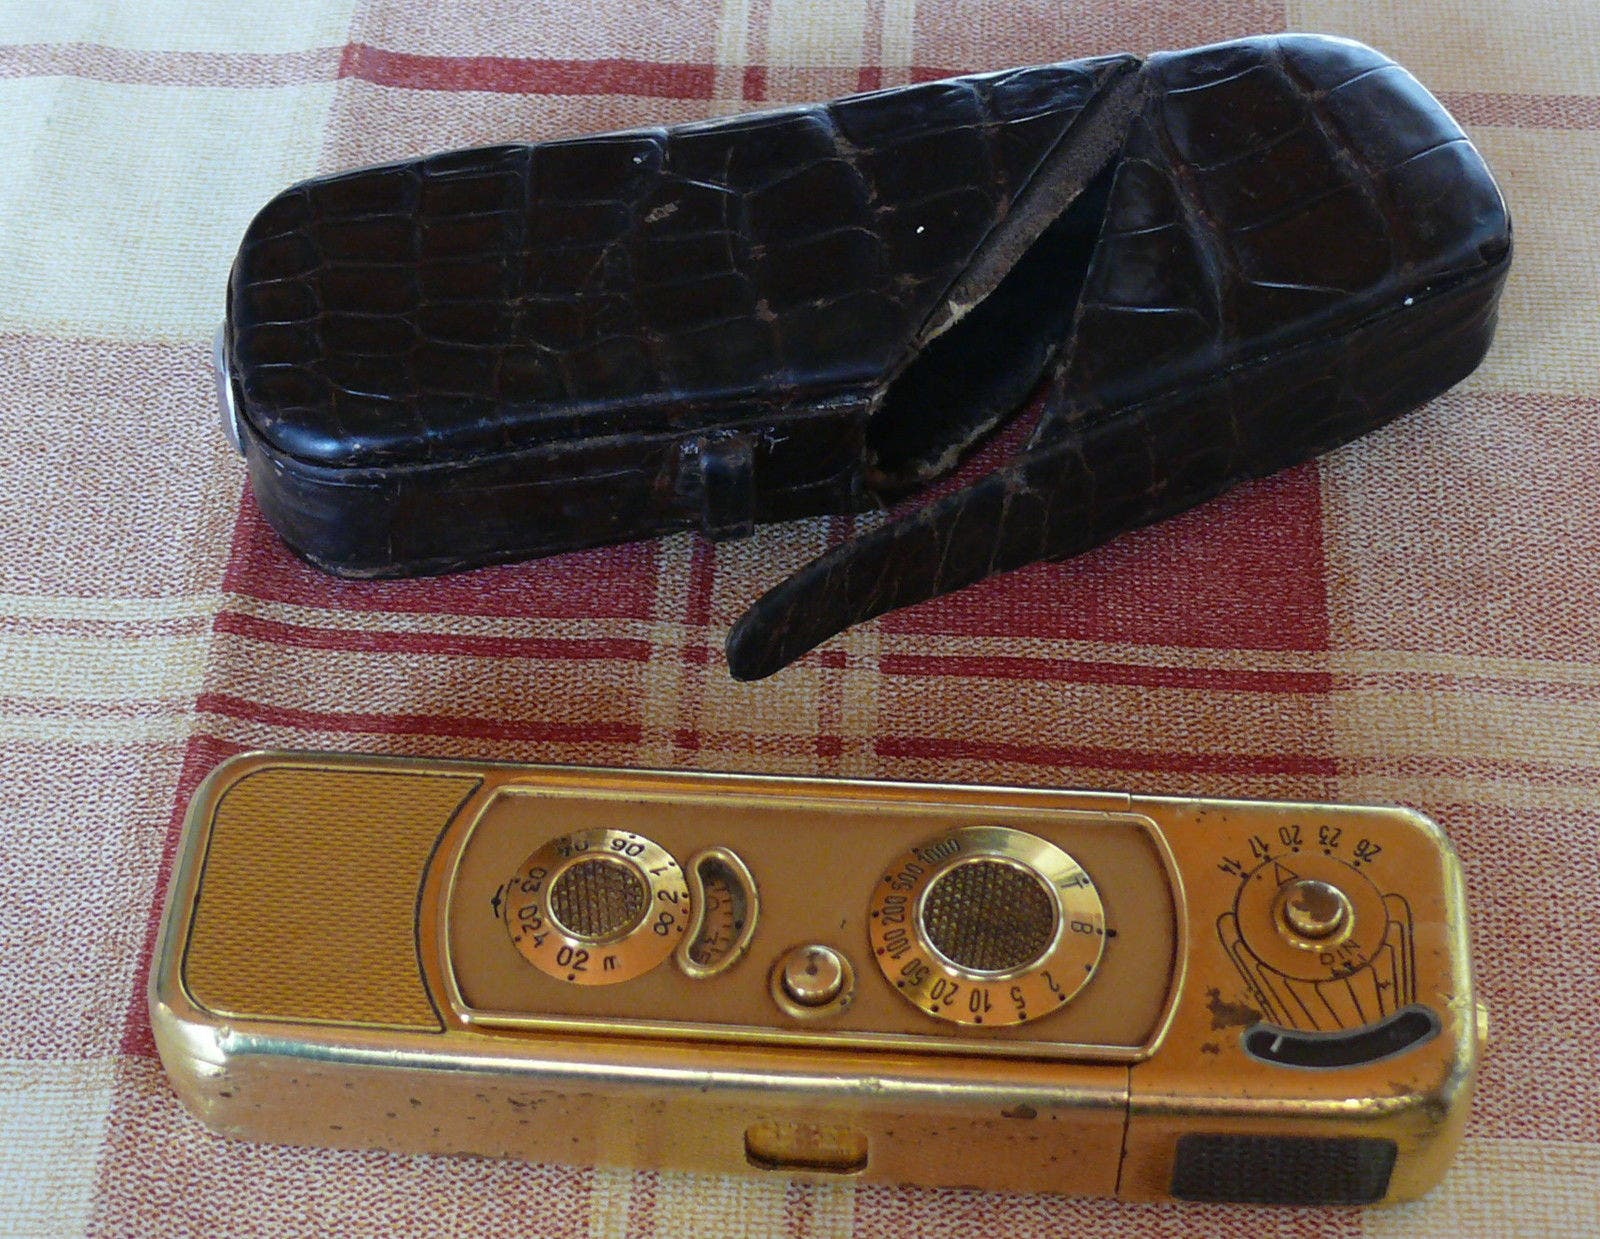 This Minox B Gold is a Luxury Spy Camera for Your Collection